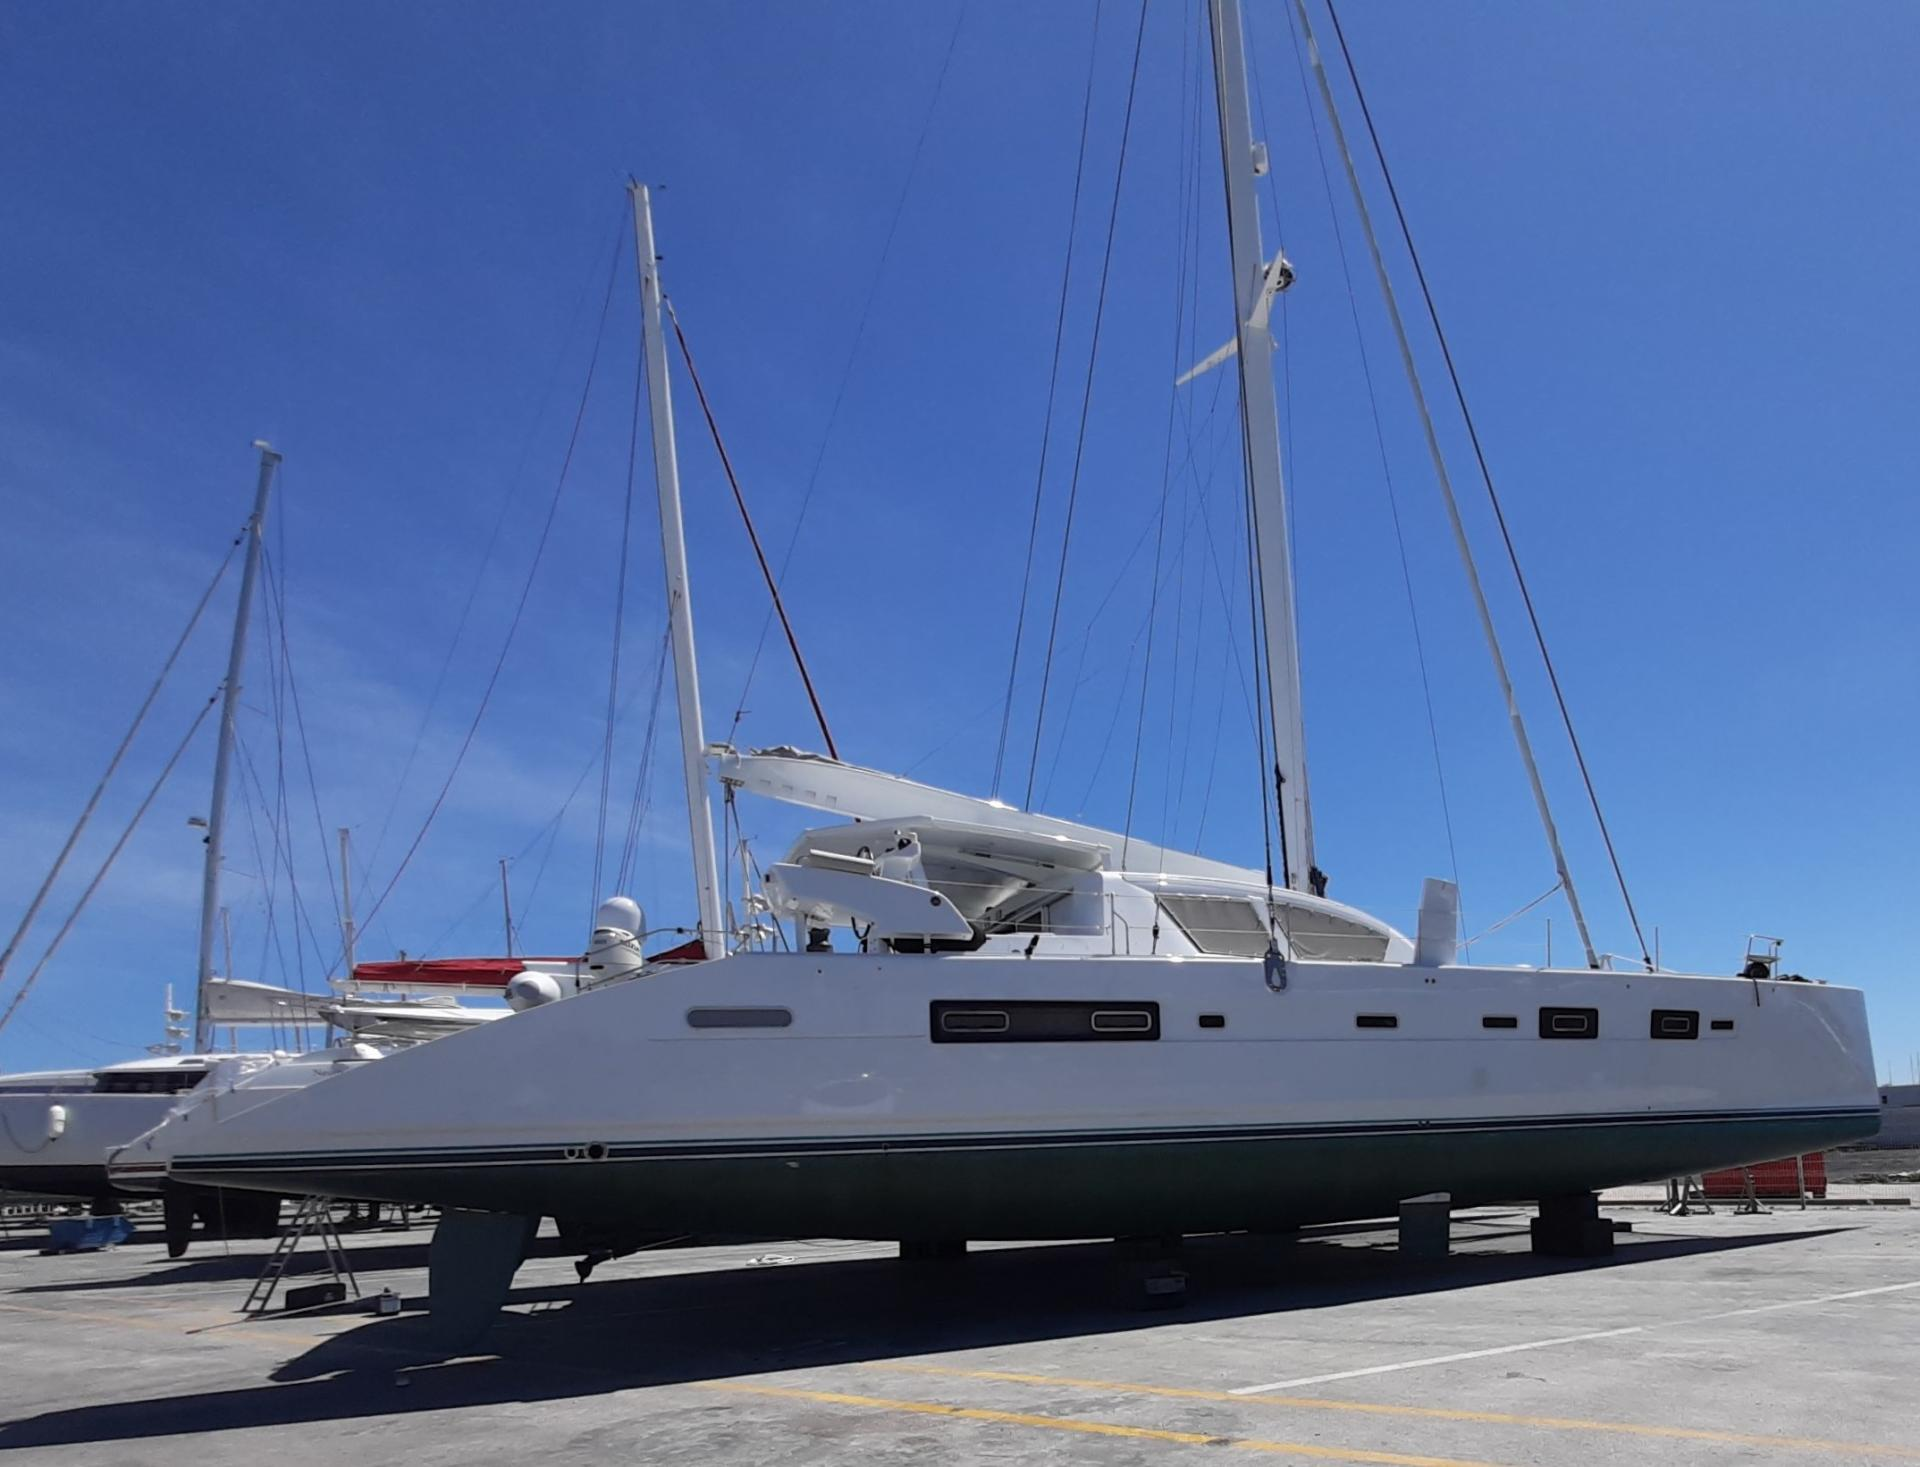 Catana 65 out of water